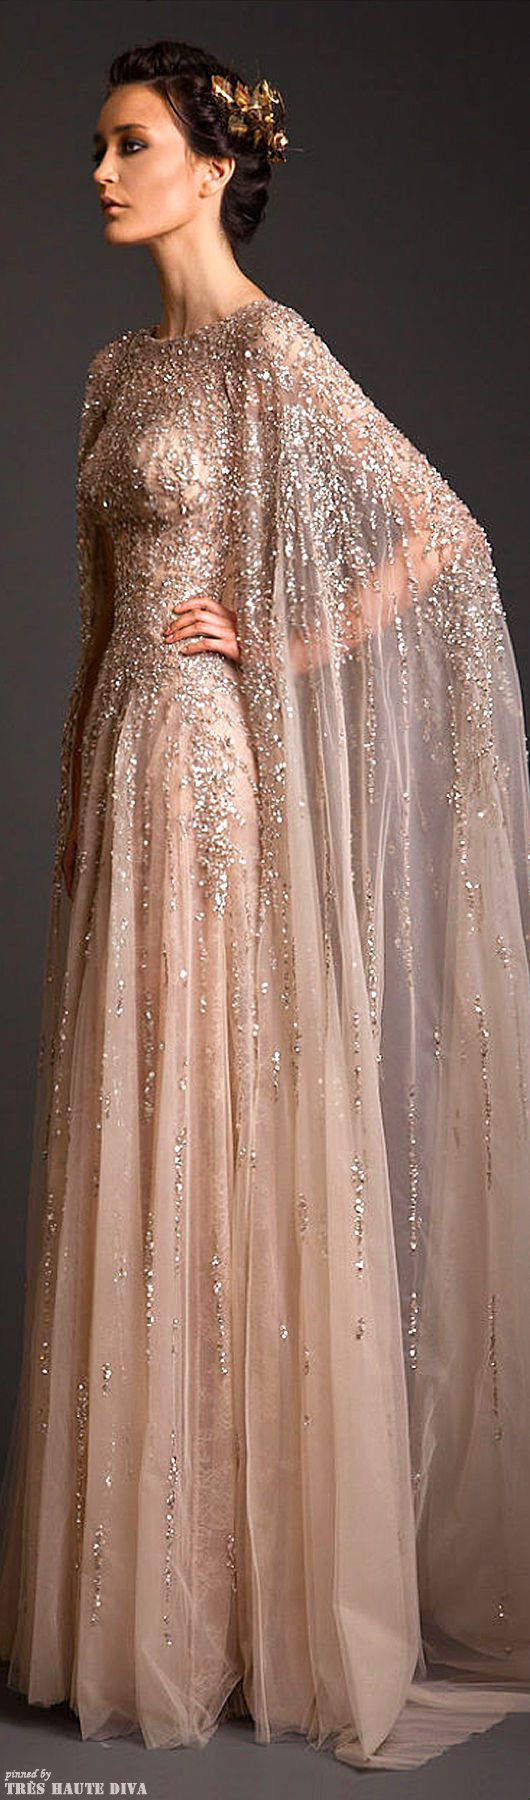 Krikor Jabotian Couture S/S 2014. It's like a skating dress, but not for skating :)